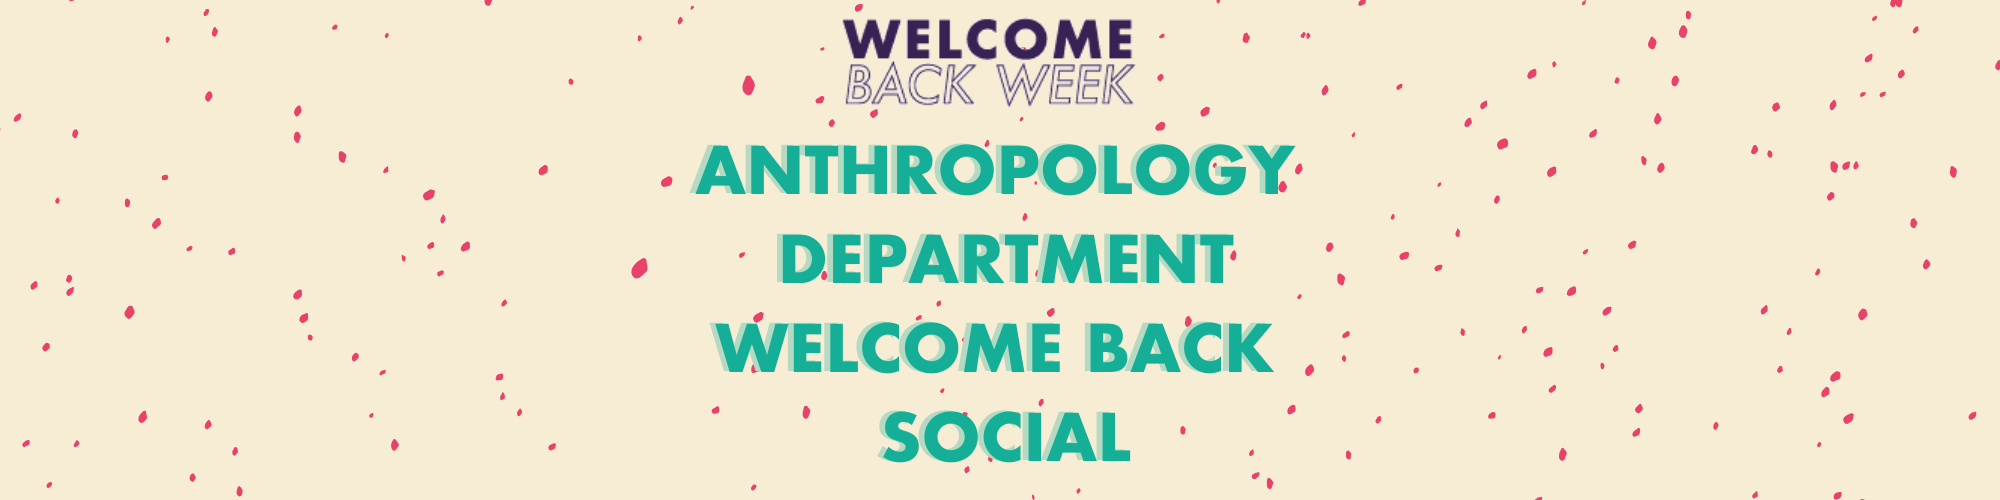 Anthropology Department Welcome Back Social